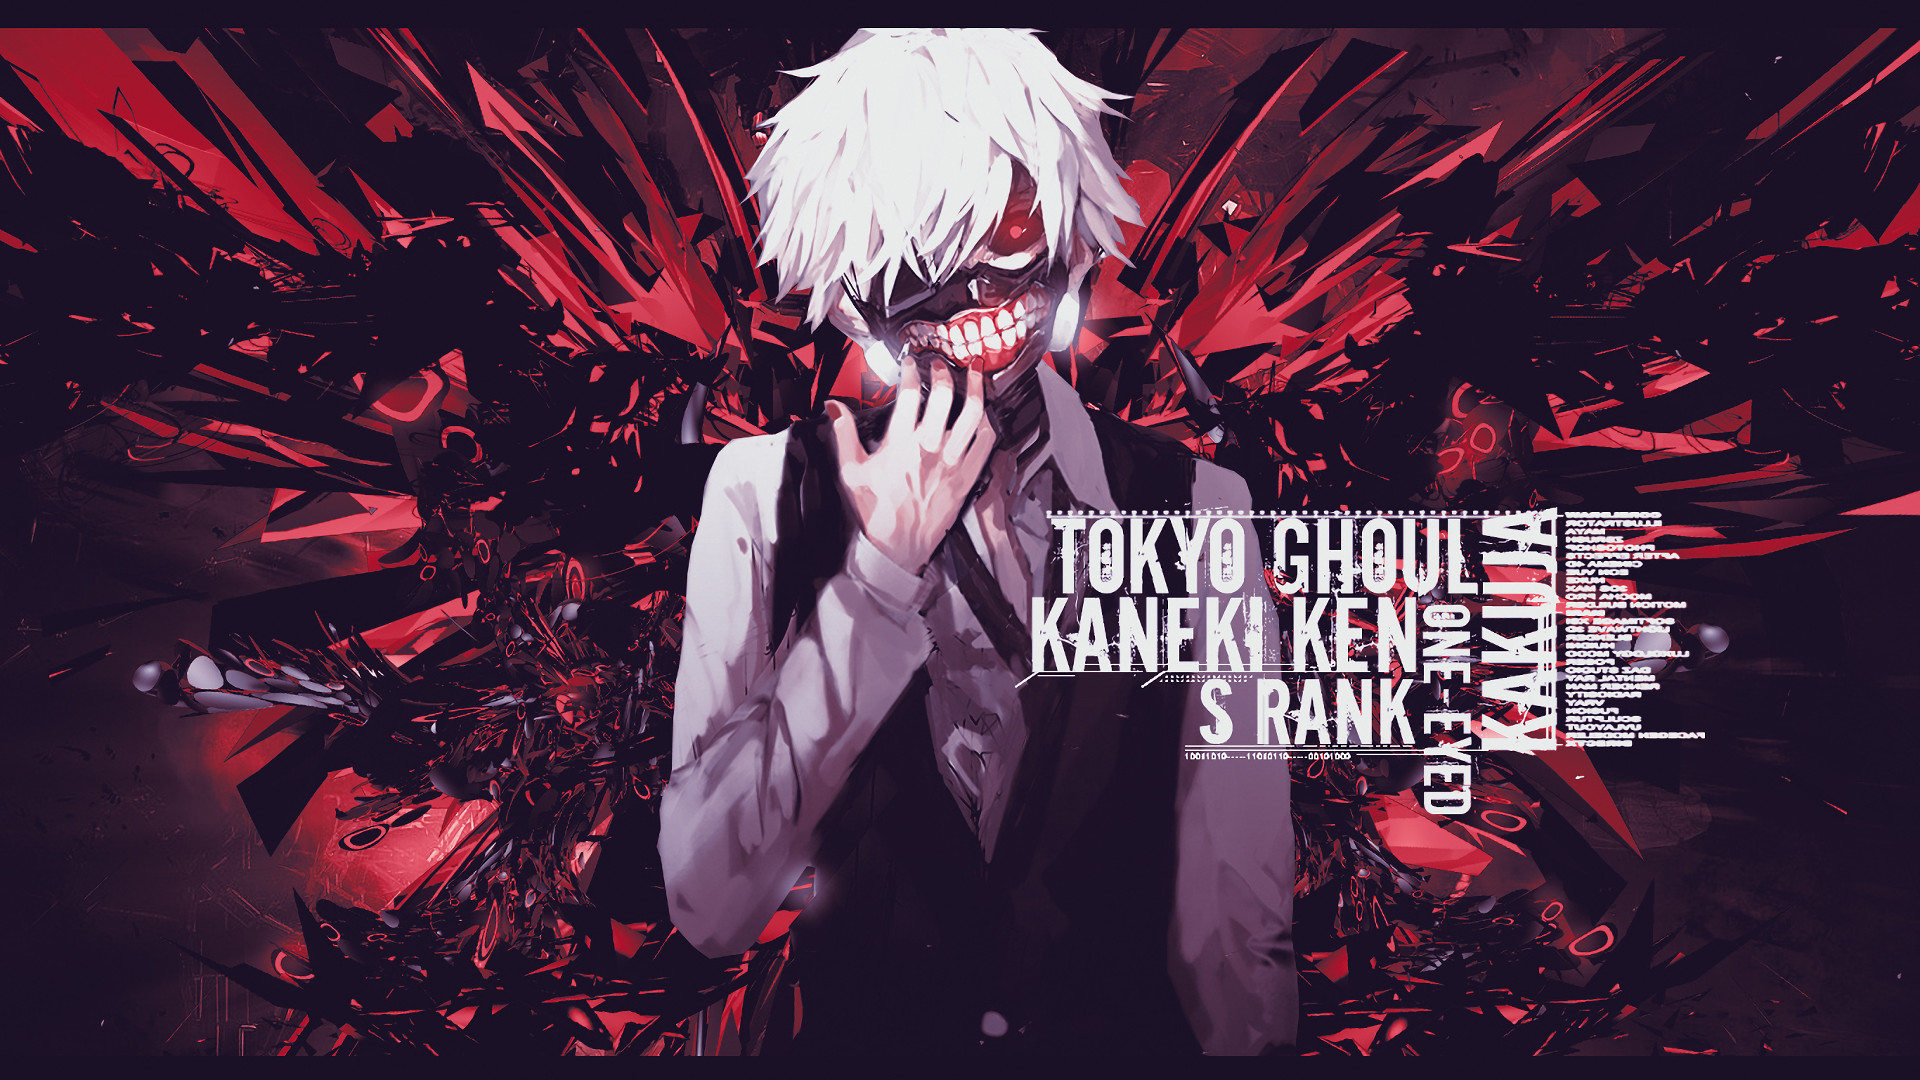 1920x1080 Anime - Tokyo Ghoul Wallpaper